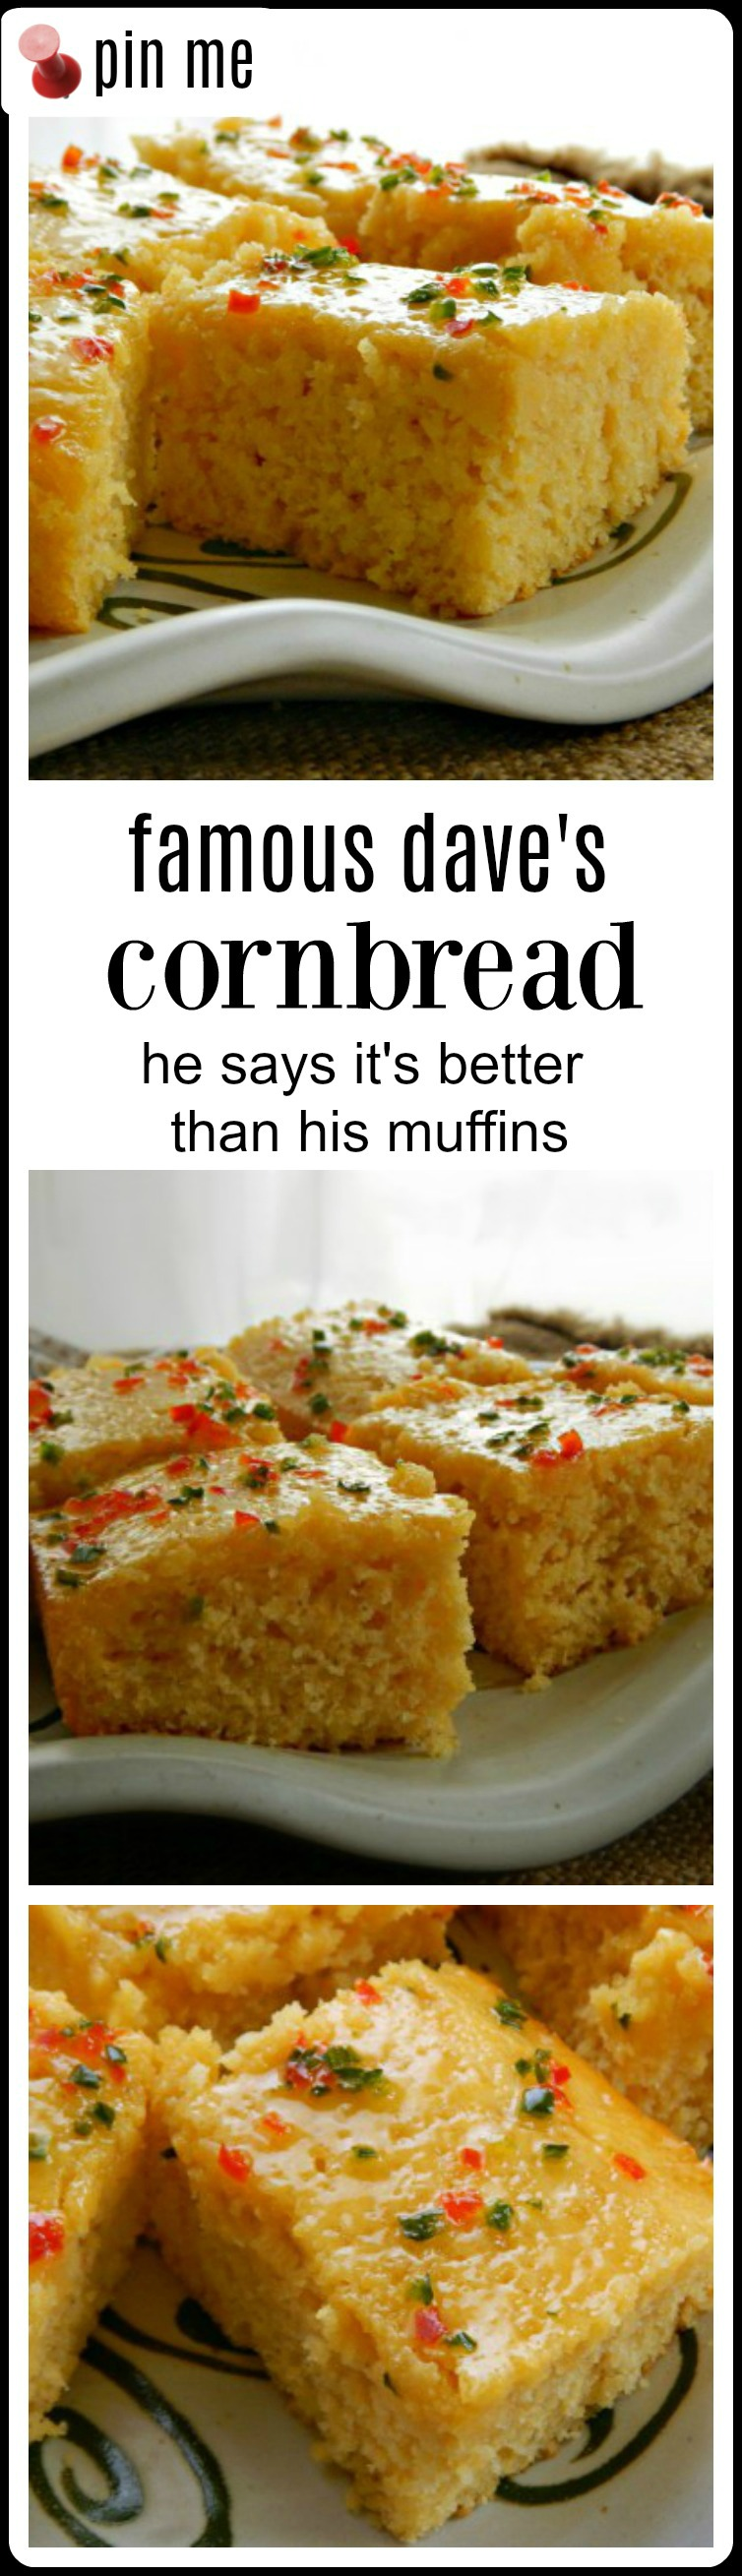 If you want an incredible, moist, fluffy cornbread, you've got to try Famous Dave Anderson's recipe for his Famous Dave's Cornbread. He claims it's even better than his corn muffins. I agree! Use the Jalapeno Honey Glaze or serve with Honey Butter. #FamousDavesCornbread #FamousDavesMuffins